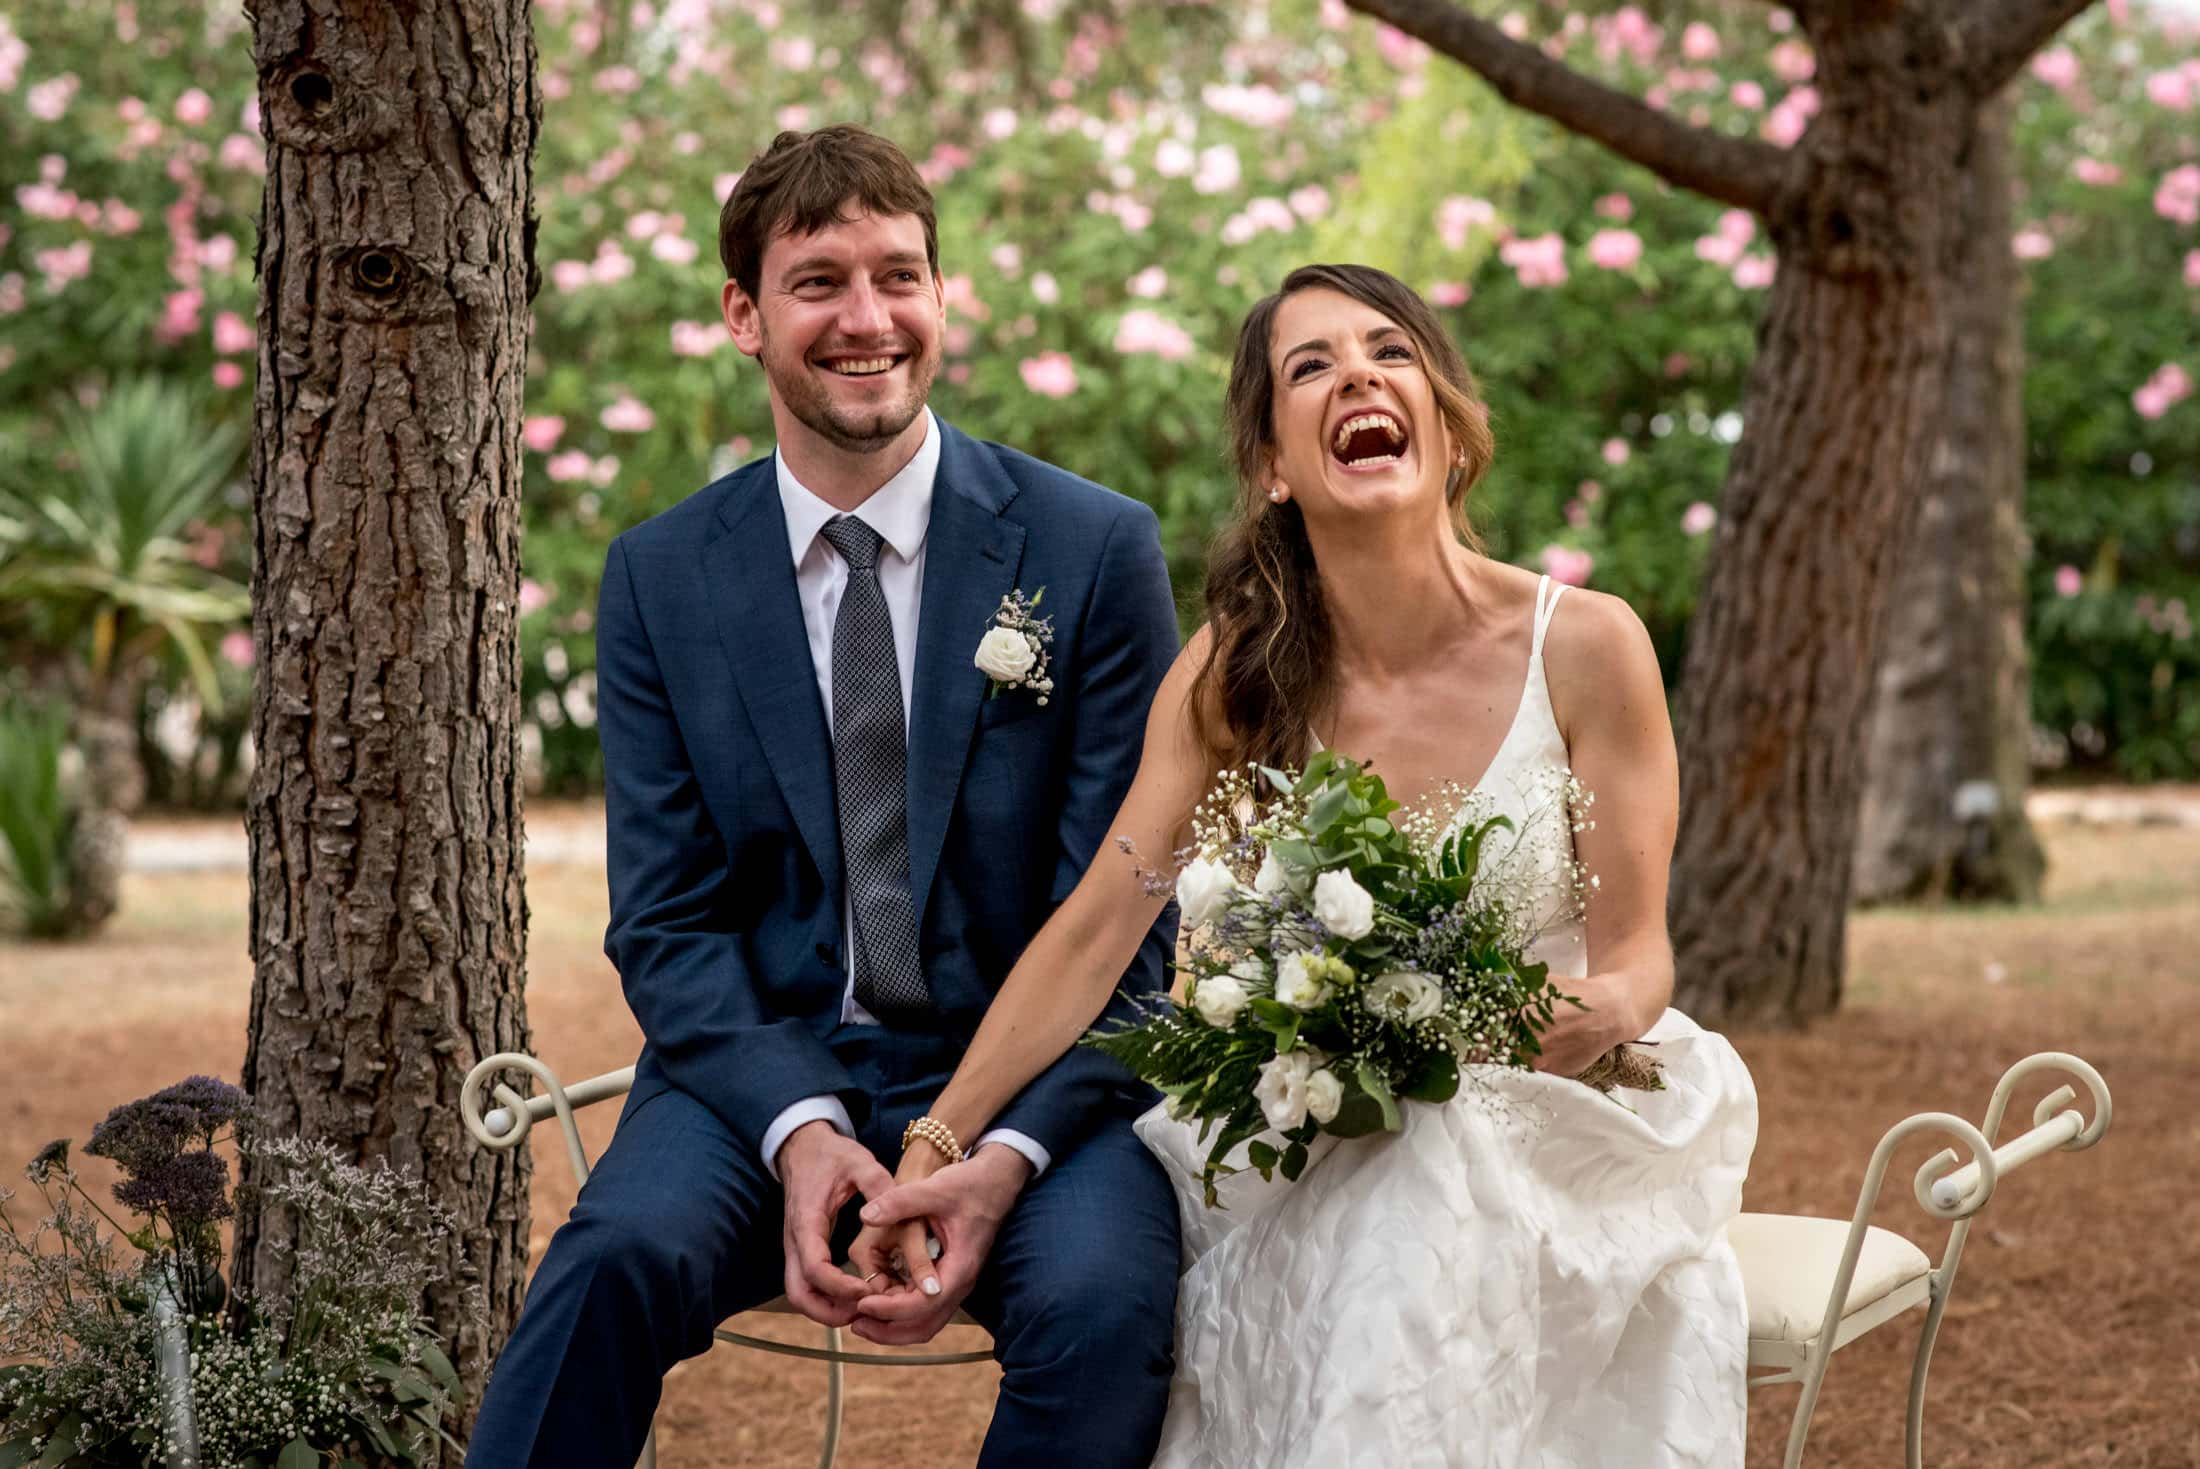 photo of bride and groom laughing during the ceremony